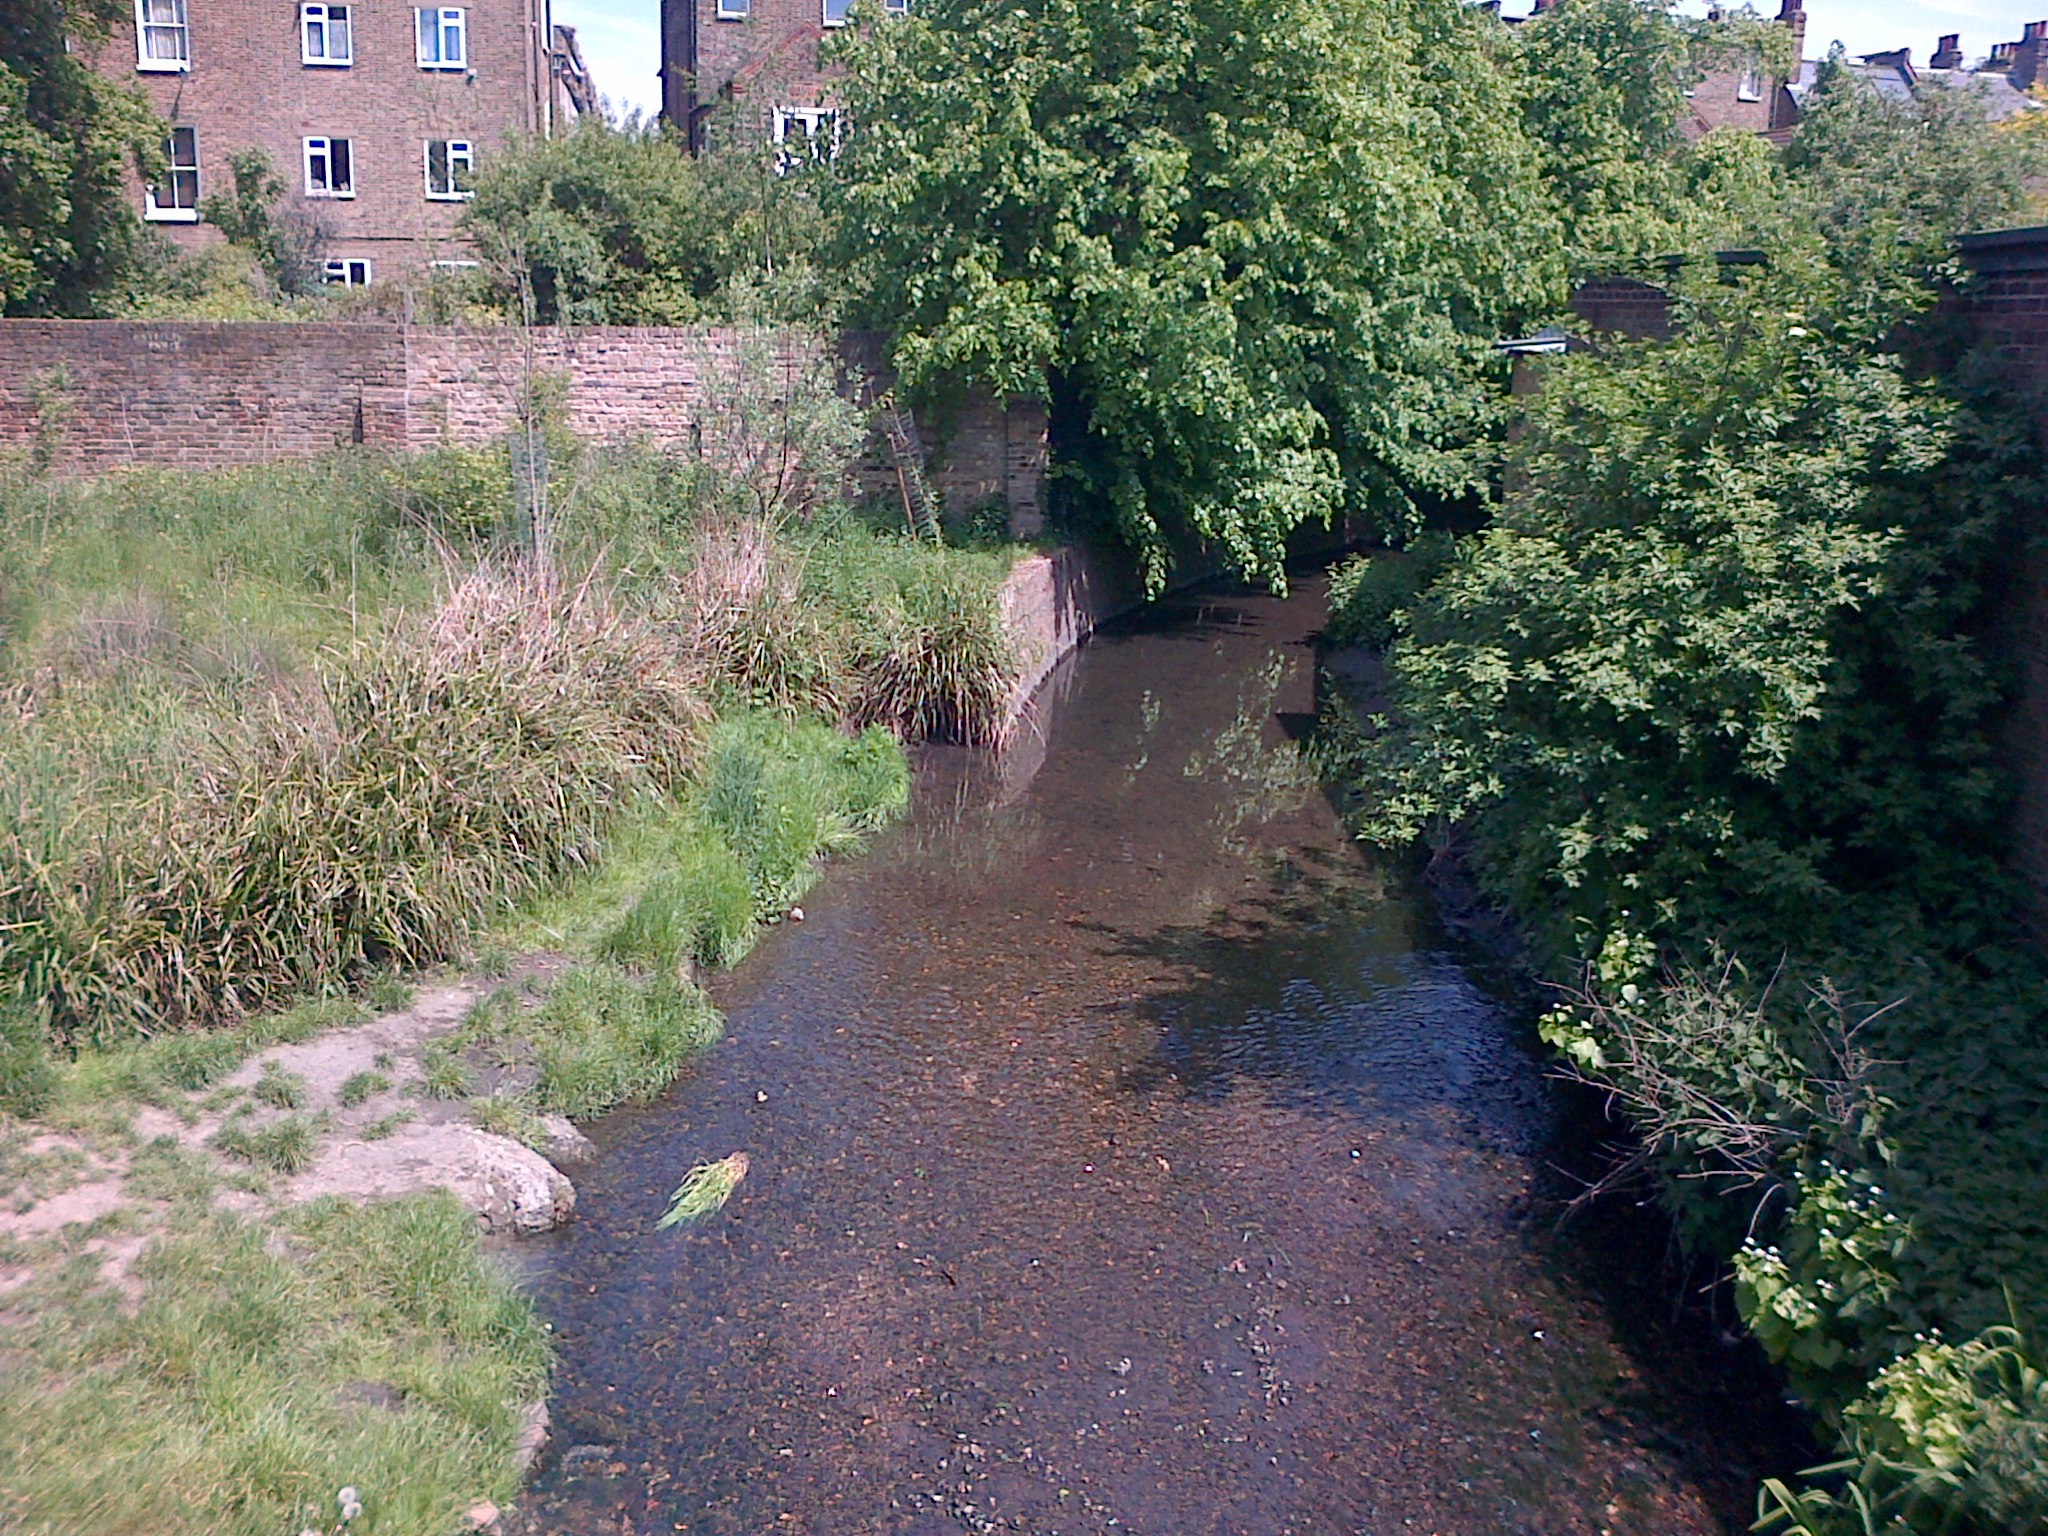 R Quaggy walk2